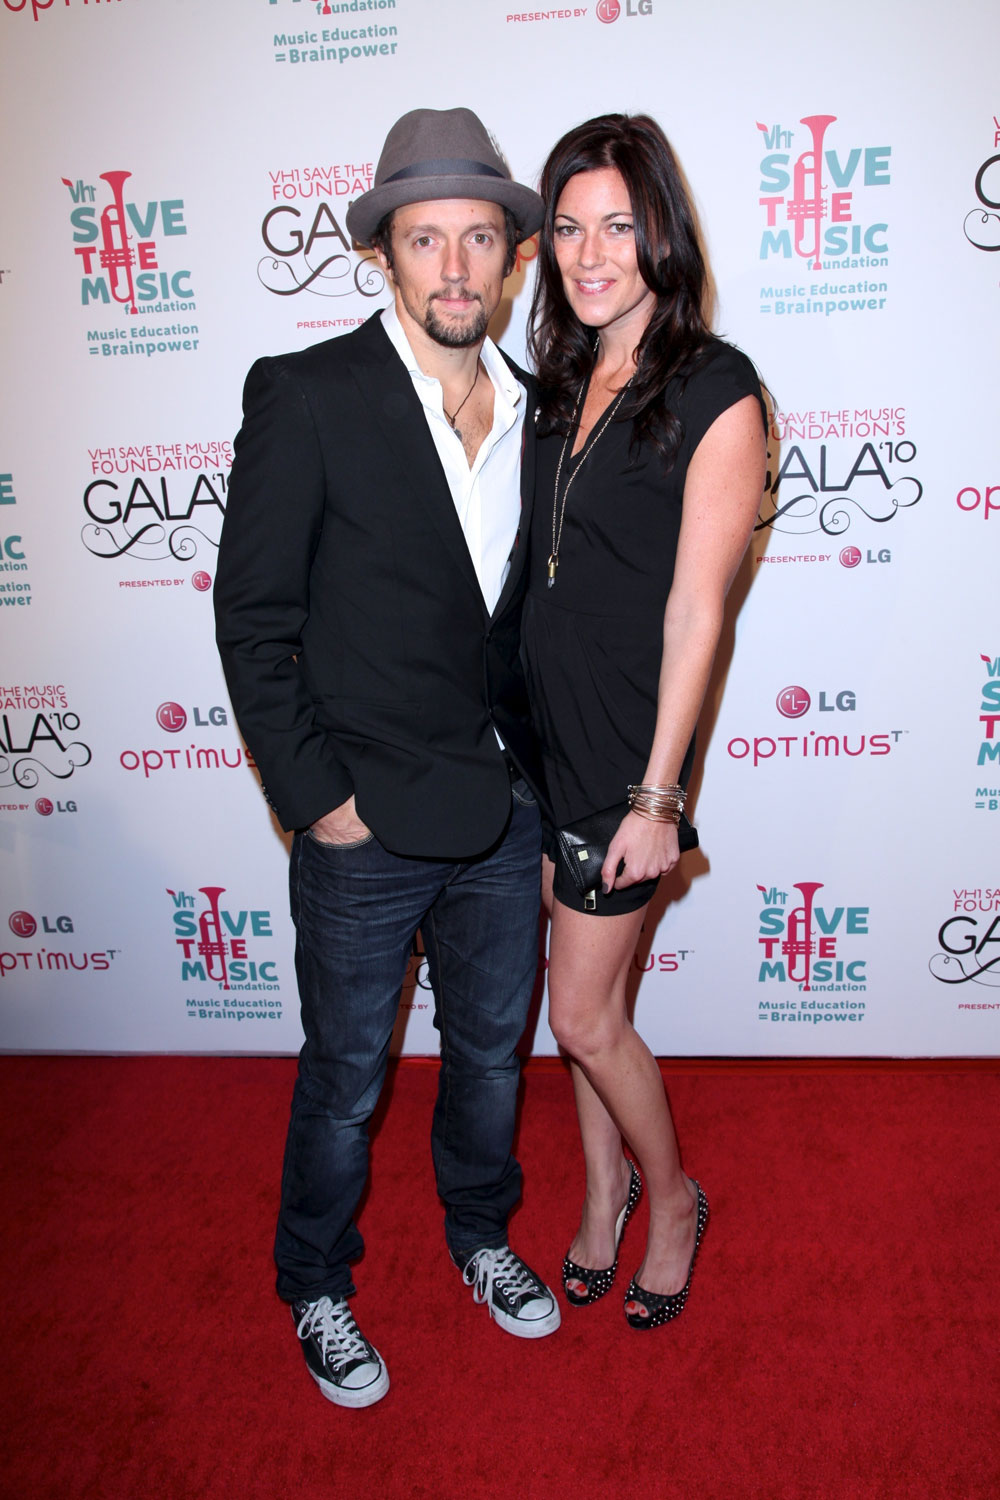 jason mraz and tristan prettyman dating Lyrics of shy that way by tristan prettyman feat jason mraz: you know you're stunning, you're absolutely stunning, and i'm running always running, and now.